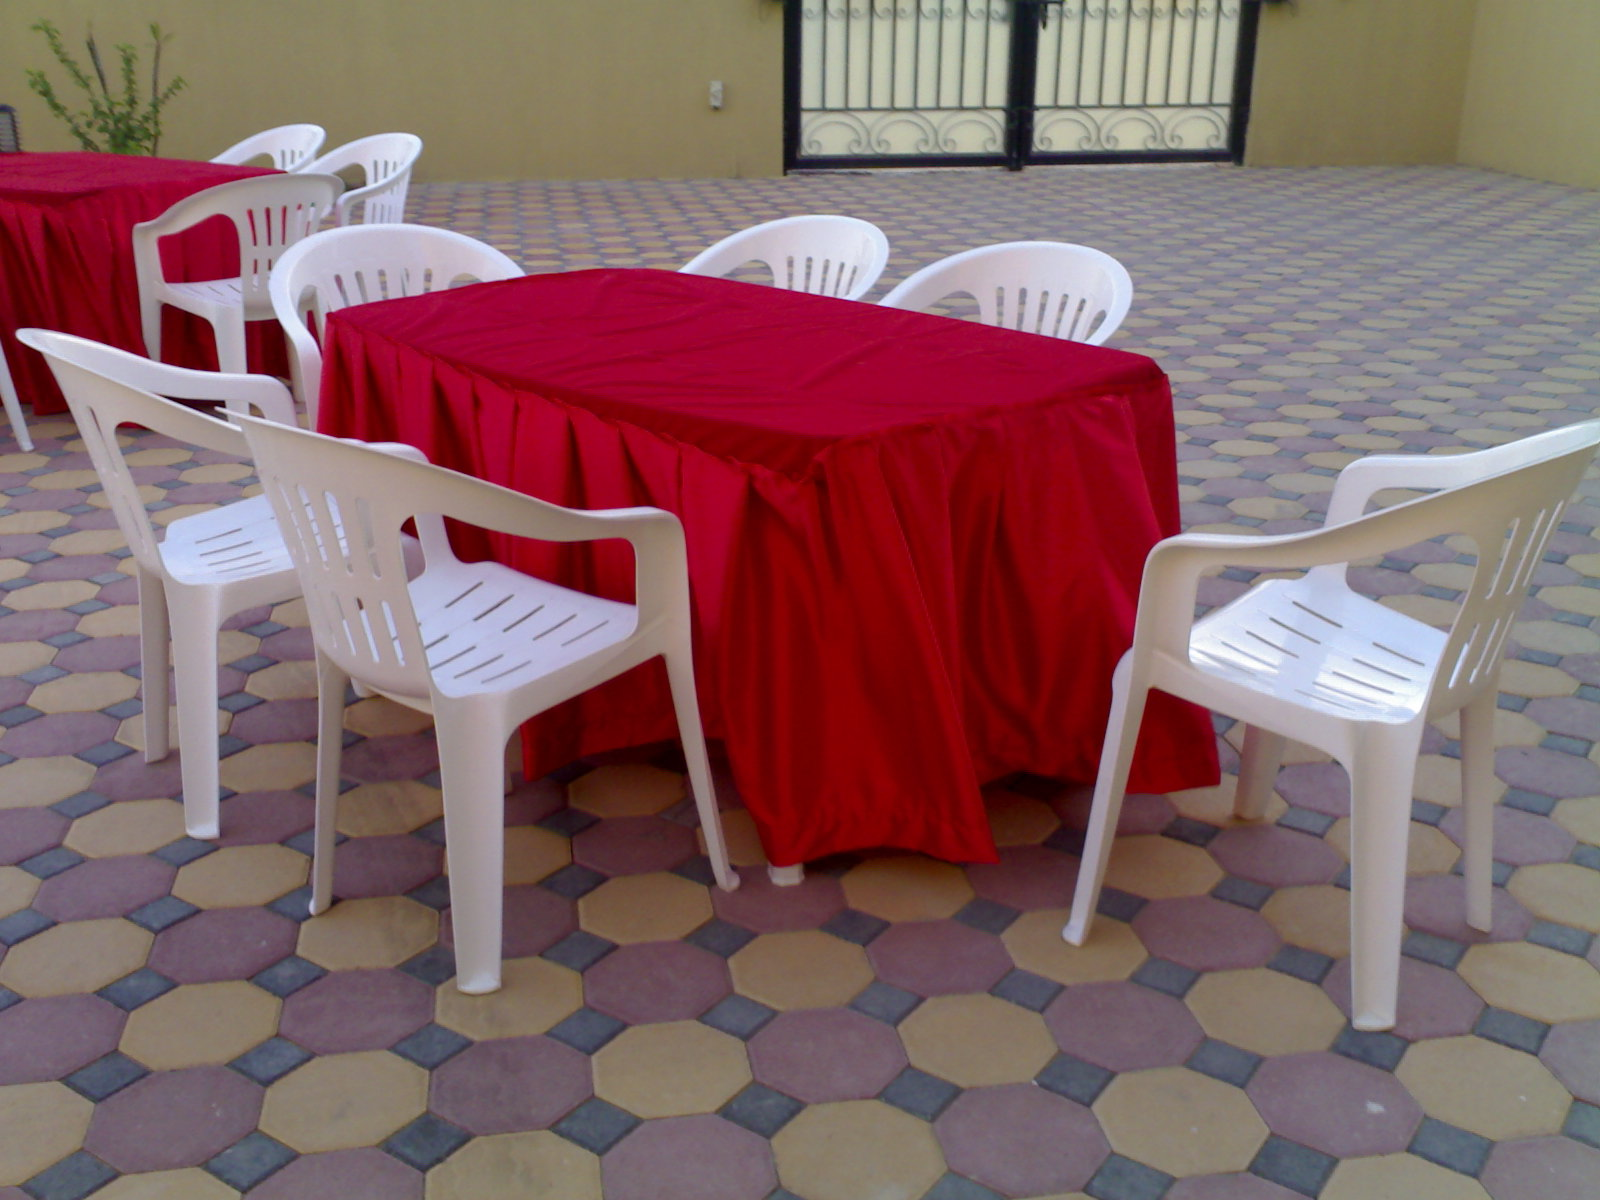 Rental Chairs And Tables Adults And Kids Furniture Rental Hire Party Tables Chairs Rental